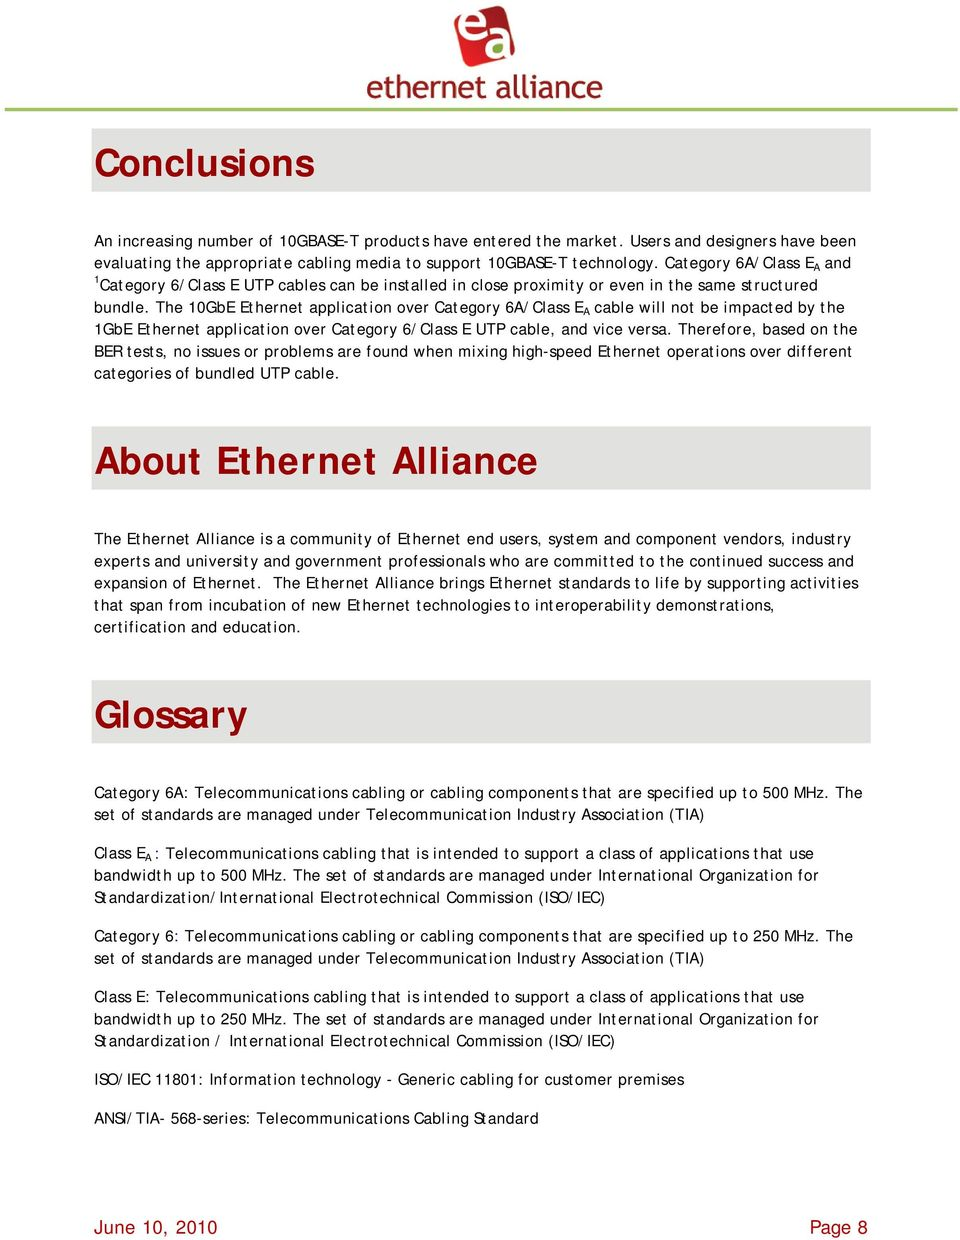 The 10GbE Ethernet application over Category 6A/ A cable will not be impacted by the 1GbE Ethernet application over Category 6/ UTP cable, and vice versa.